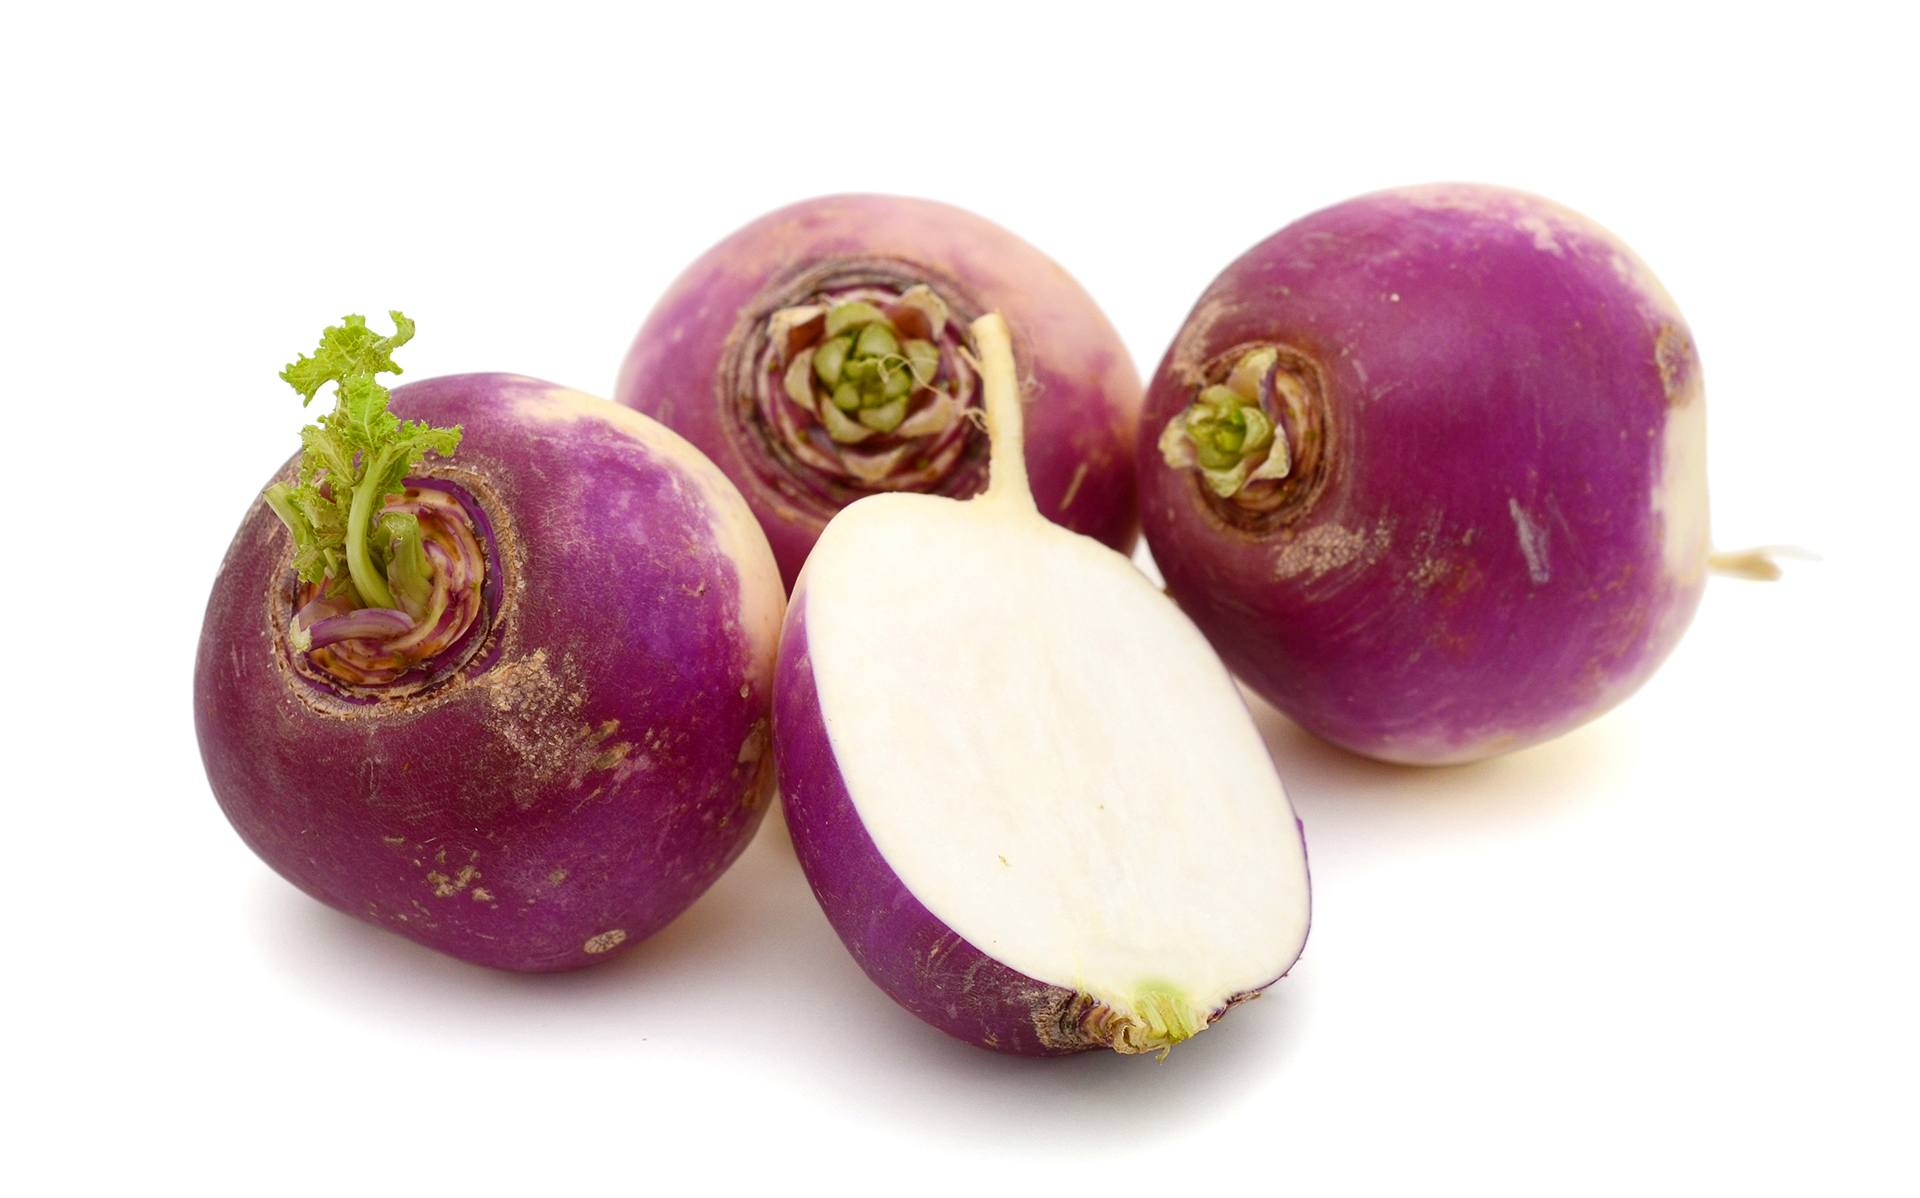 Can Dogs Eat Turnips?